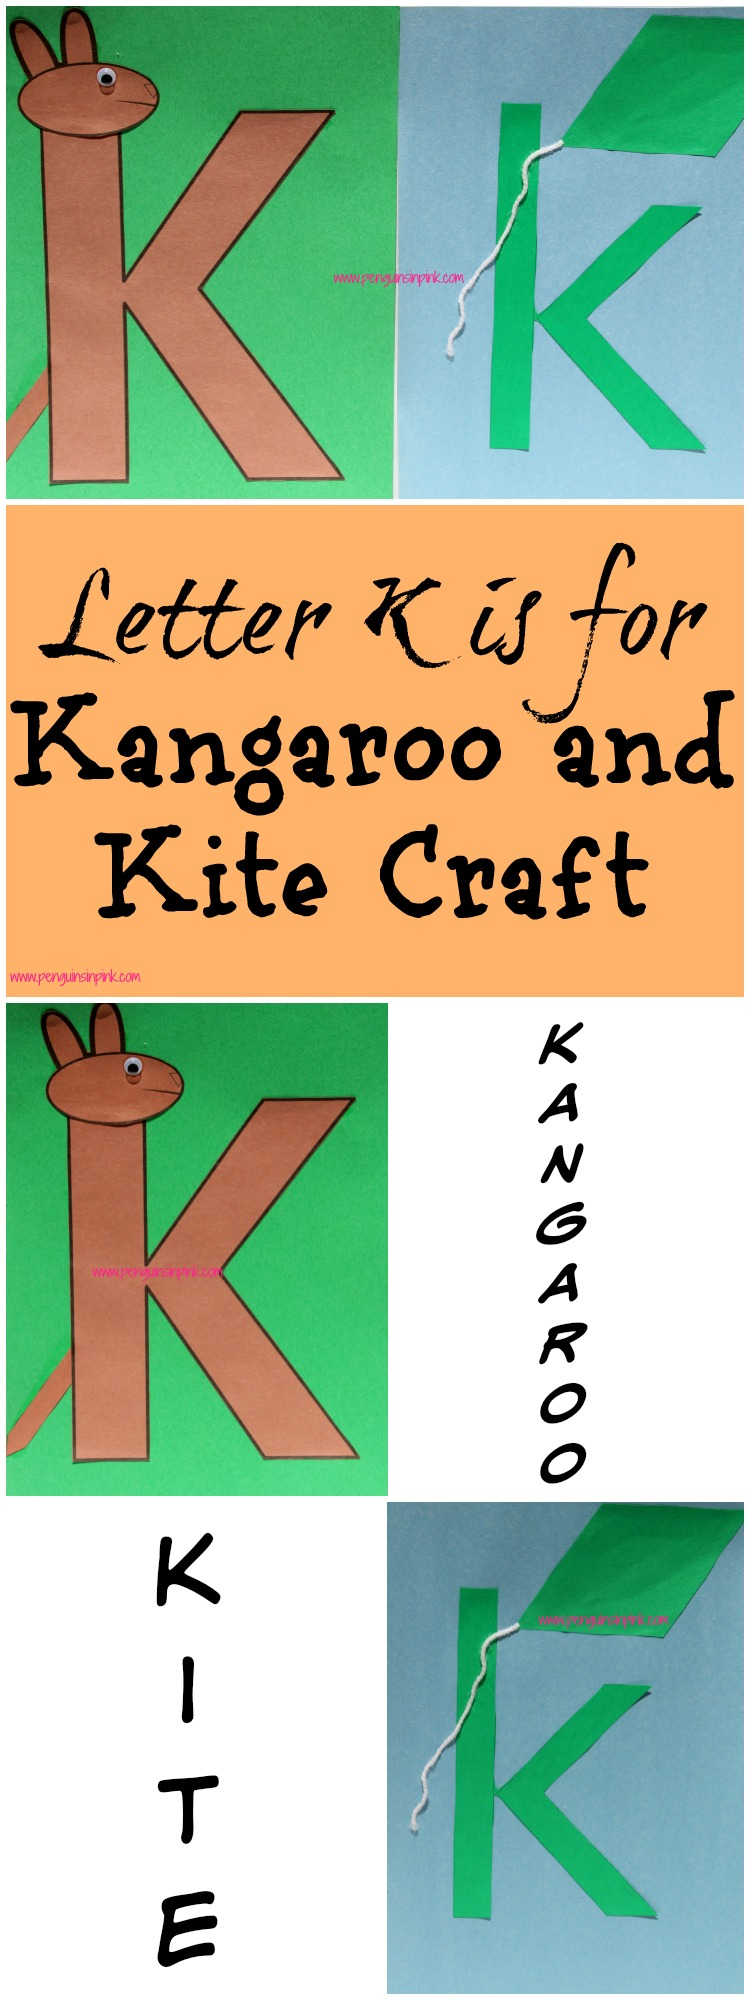 Letter K is for Kangaroo and Kite Craft is a fun letter a craft making a kangaroo out of a large capital letter K and a kite out of a large lowercase letter k with directions and free printables too.